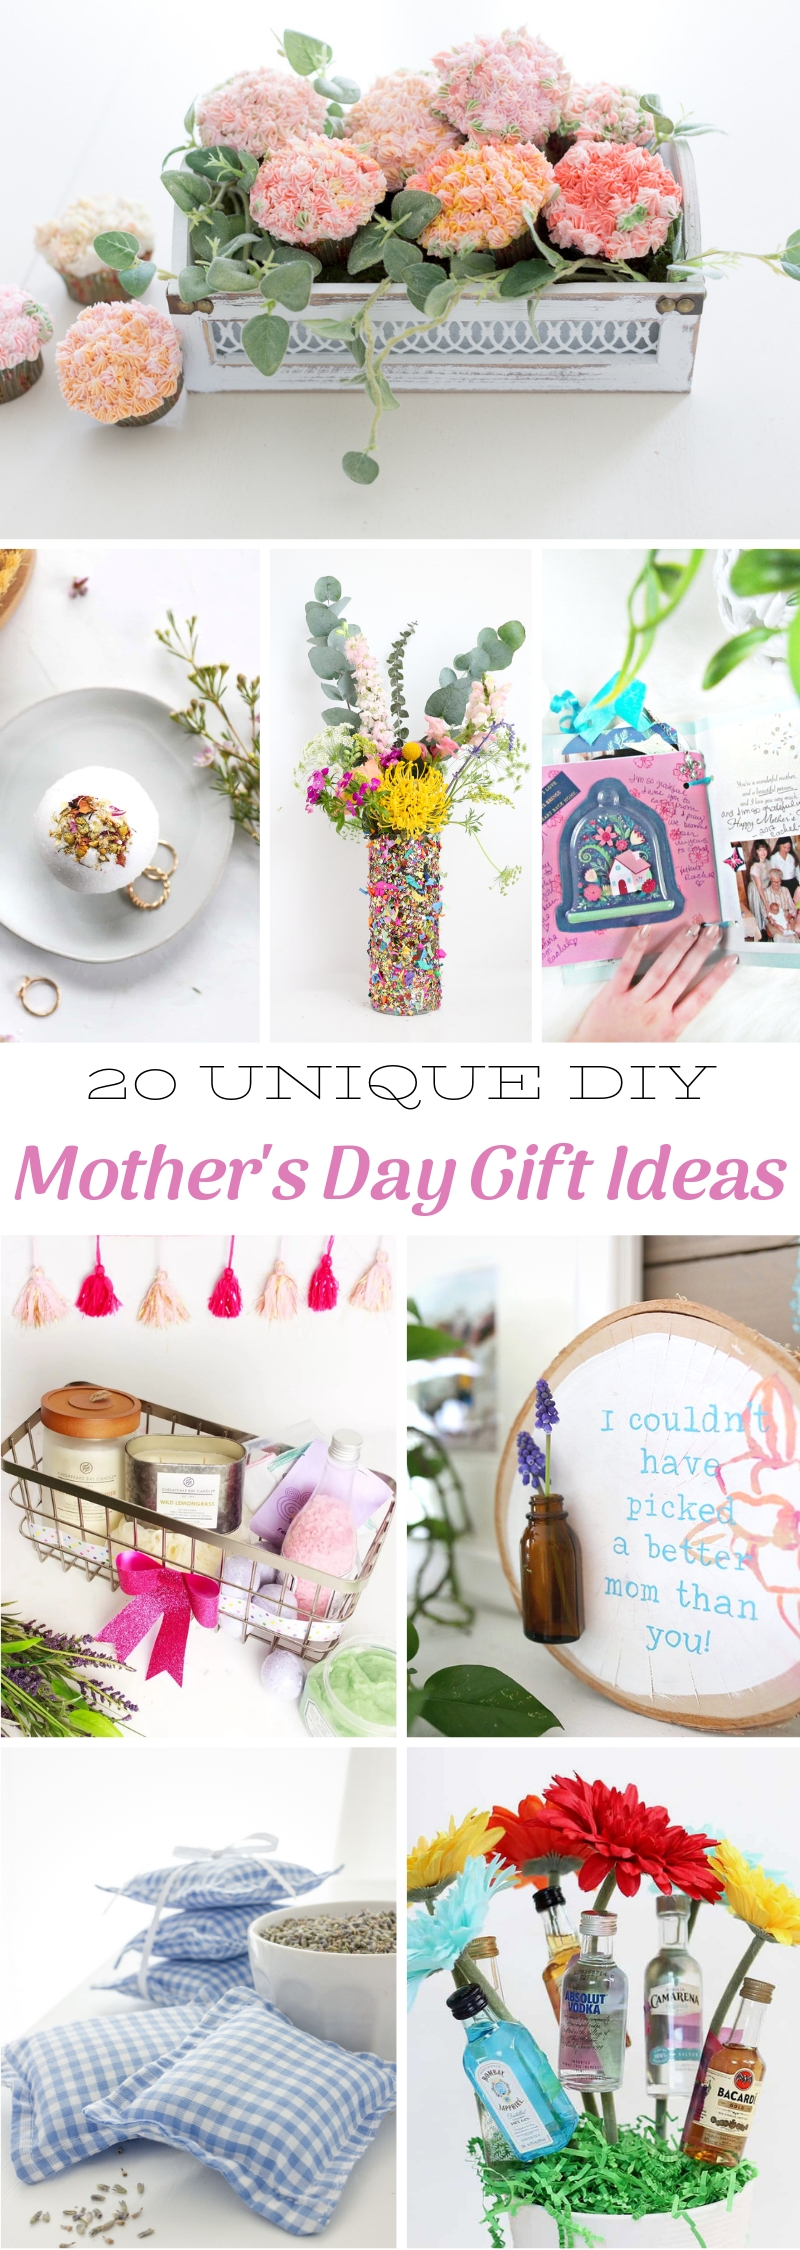 Unique DIY Mother's Day Gift Ideas